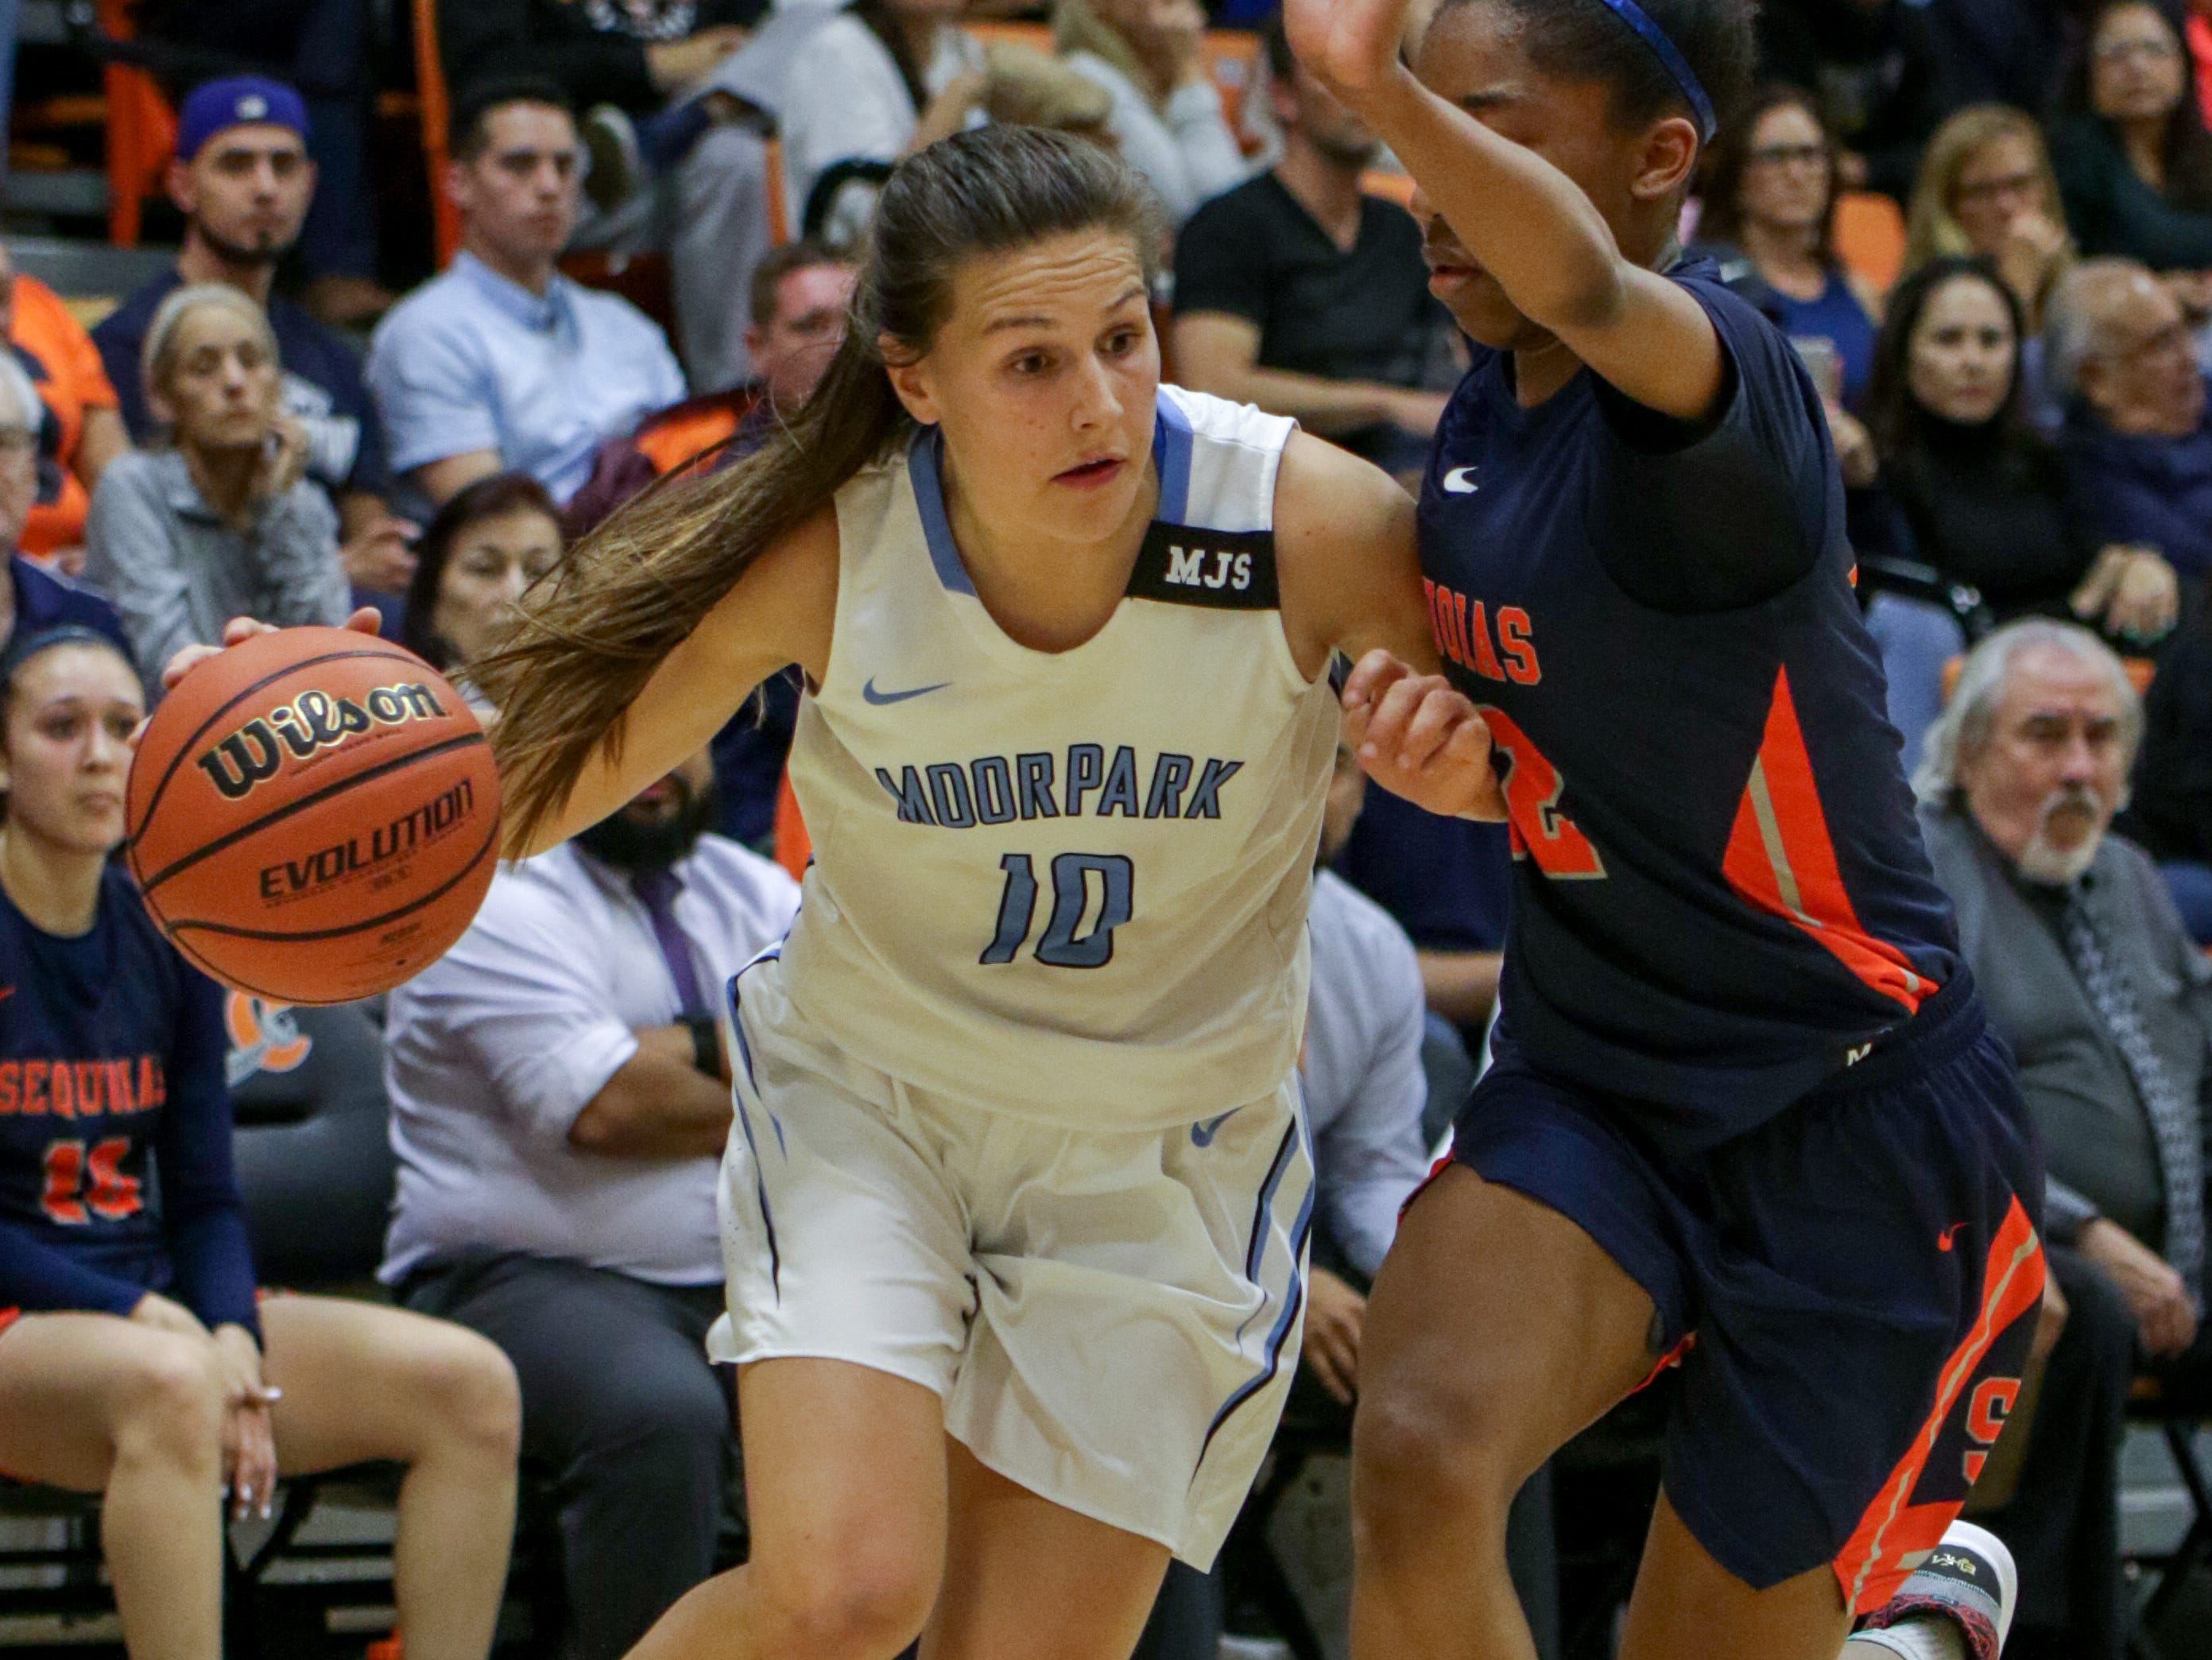 Moorpark College sophomore Emily Herring drives to the basket during the CCCAA state quarterfinal against College of the Sequoias on Friday night at Ventura College. Moorpark won, 66-58.